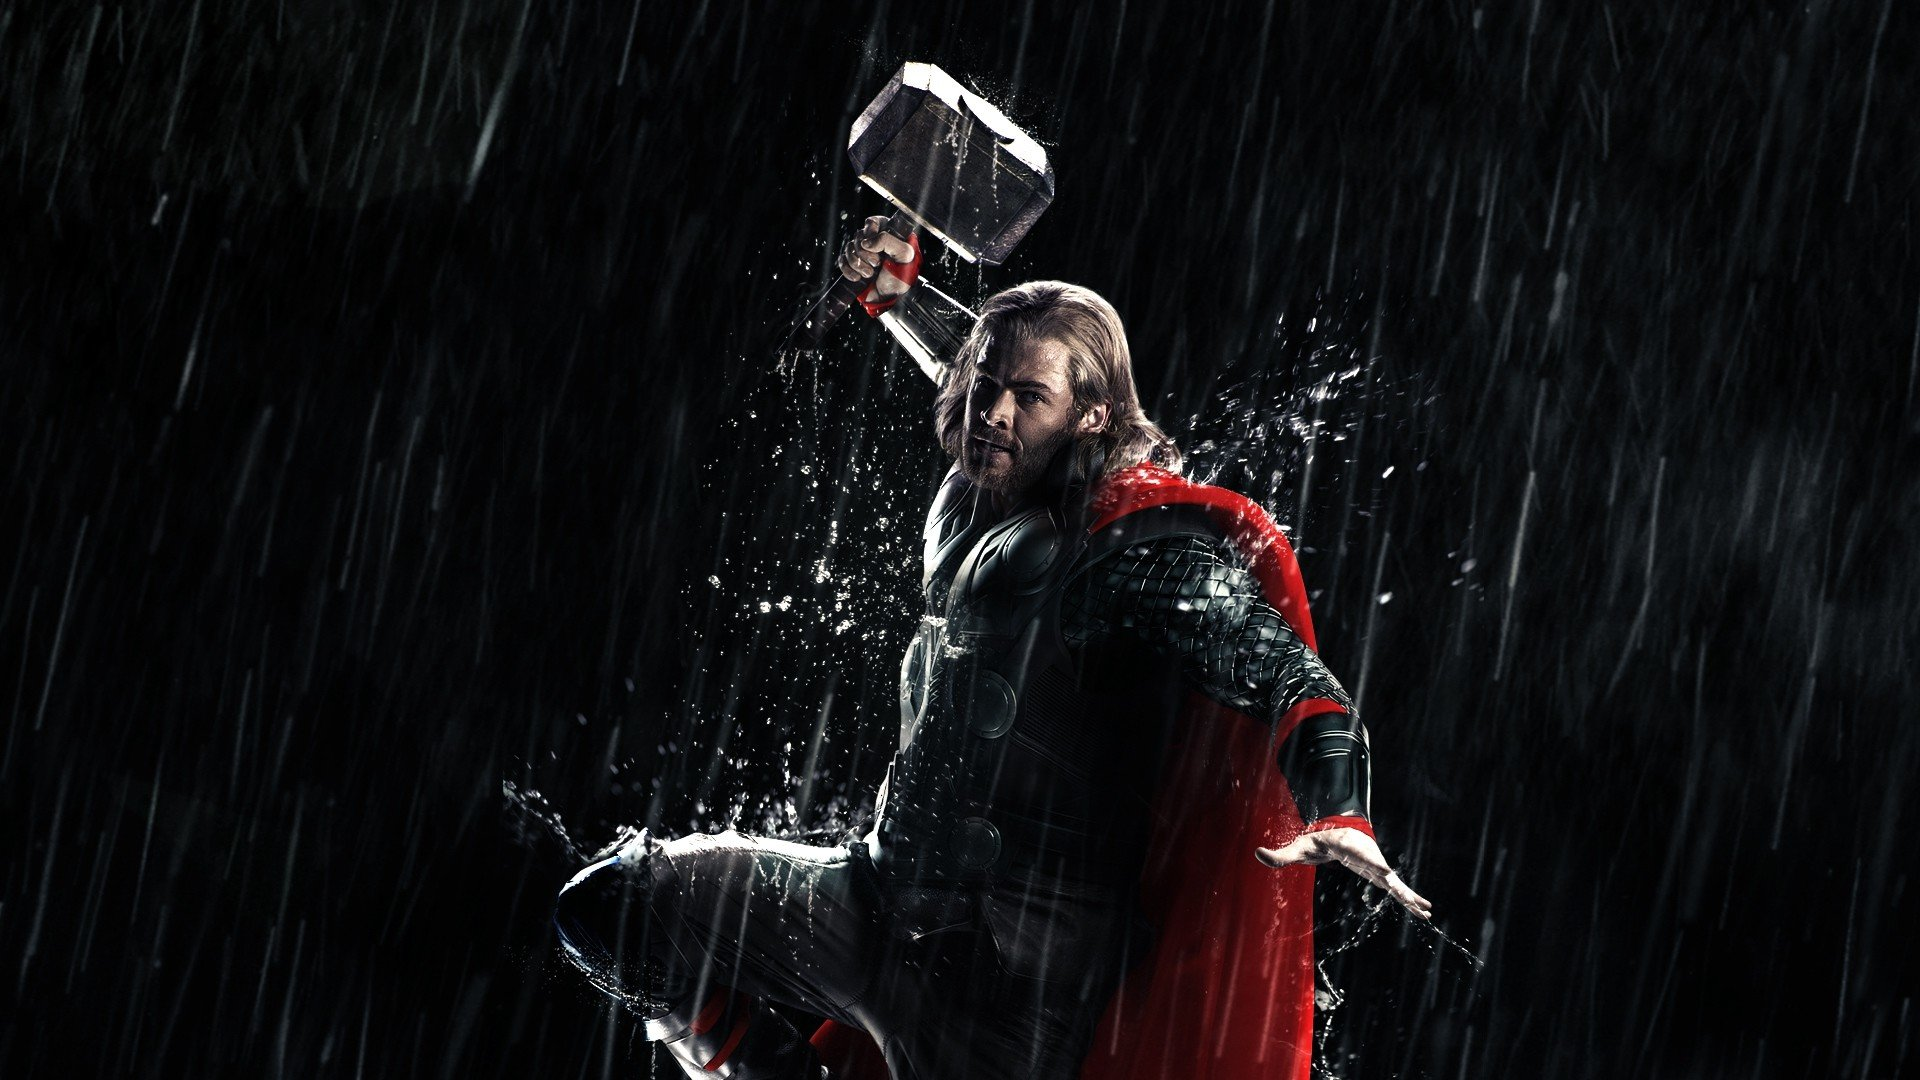 Download Full Hd 1920x1080 Thor The Dark World Pc Wallpaper Id